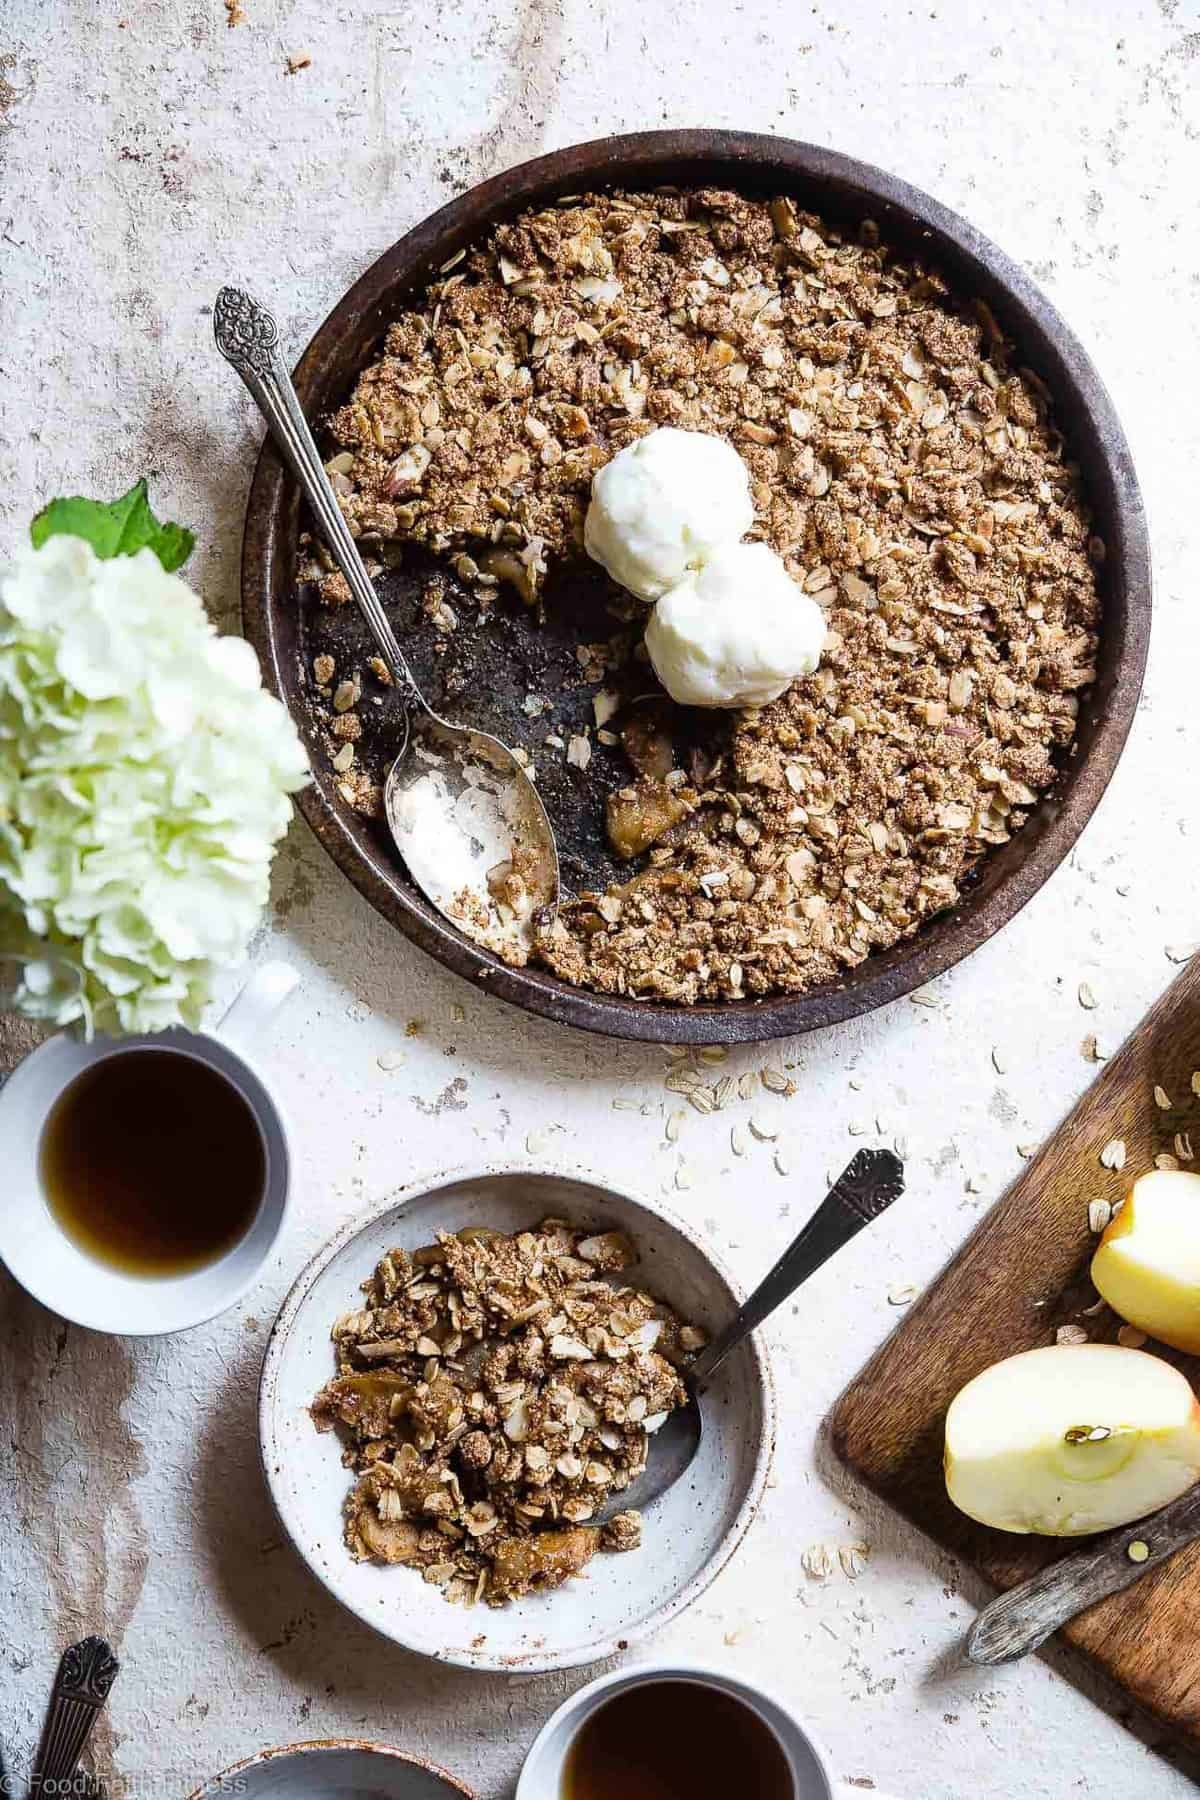 Easy Vegan Gluten Free Apple Crisp - This vegan apple crisp recipe with oats is made with SUPER simple, wholesome ingredients and is perfectly spicy-sweet and yummy! The perfect, cozy fall dessert that you will never believe is gluten/dairy/egg free and healthy! | #Foodfaithfitness | #Glutenfree #Vegan #Dairyfree #Healthy #Eggfree